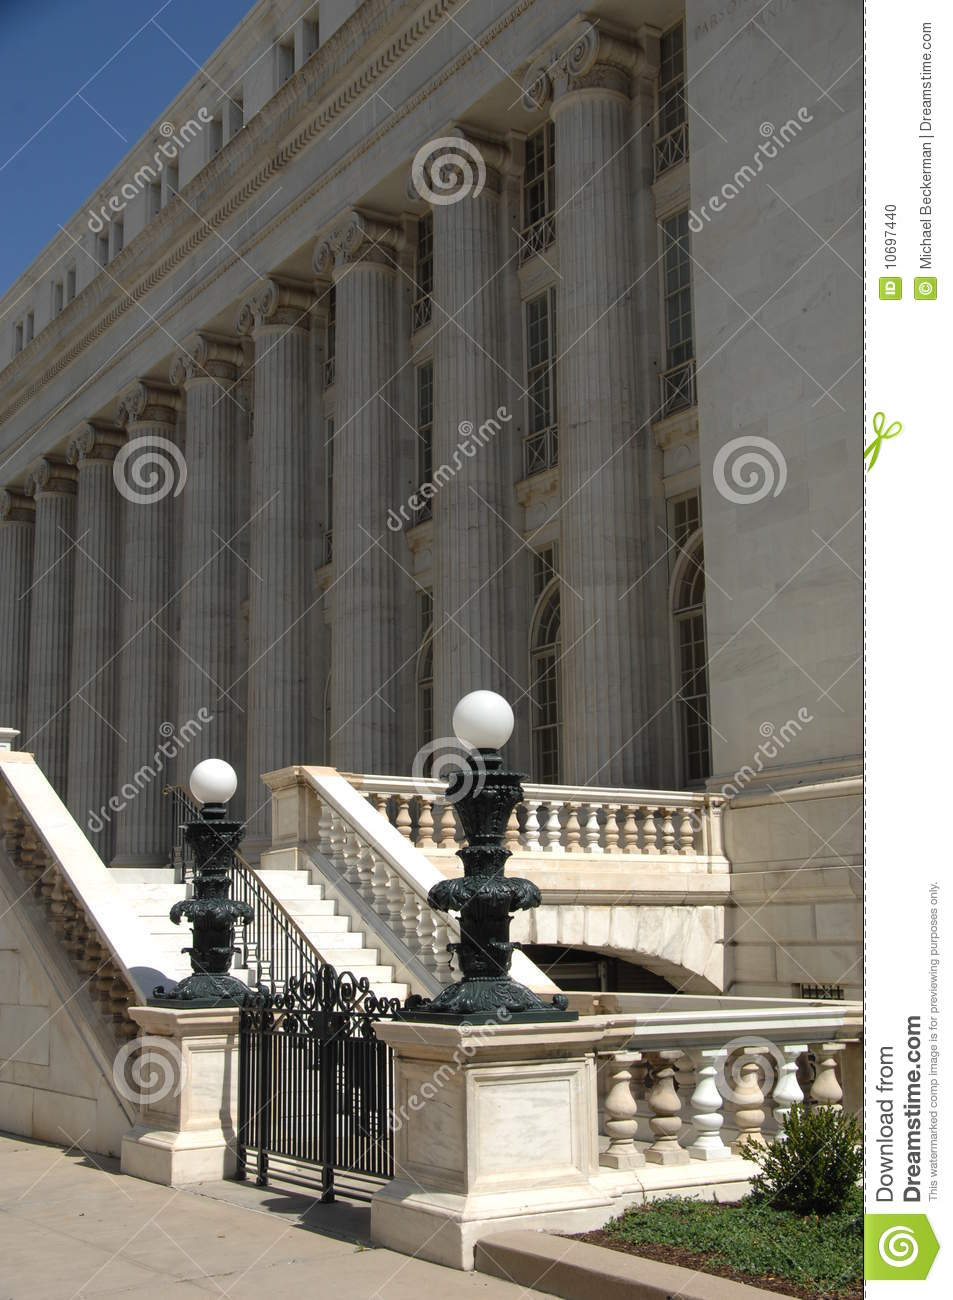 Government Courthouse 1